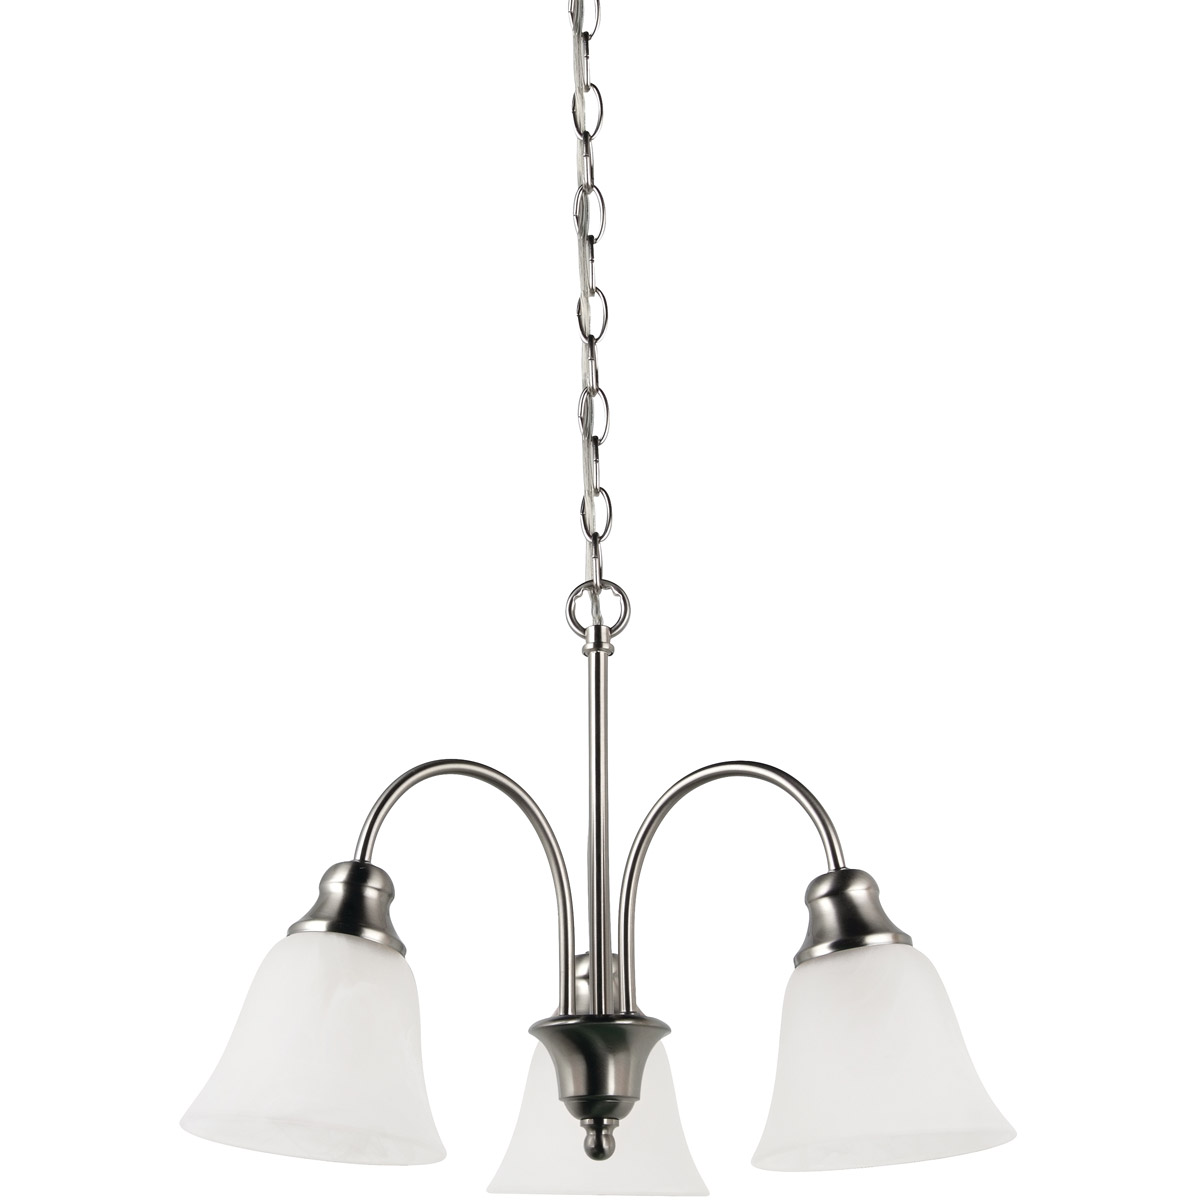 Sea Gull Lighting Windgate 3 Light Chandelier in Brushed Nickel 35949-962